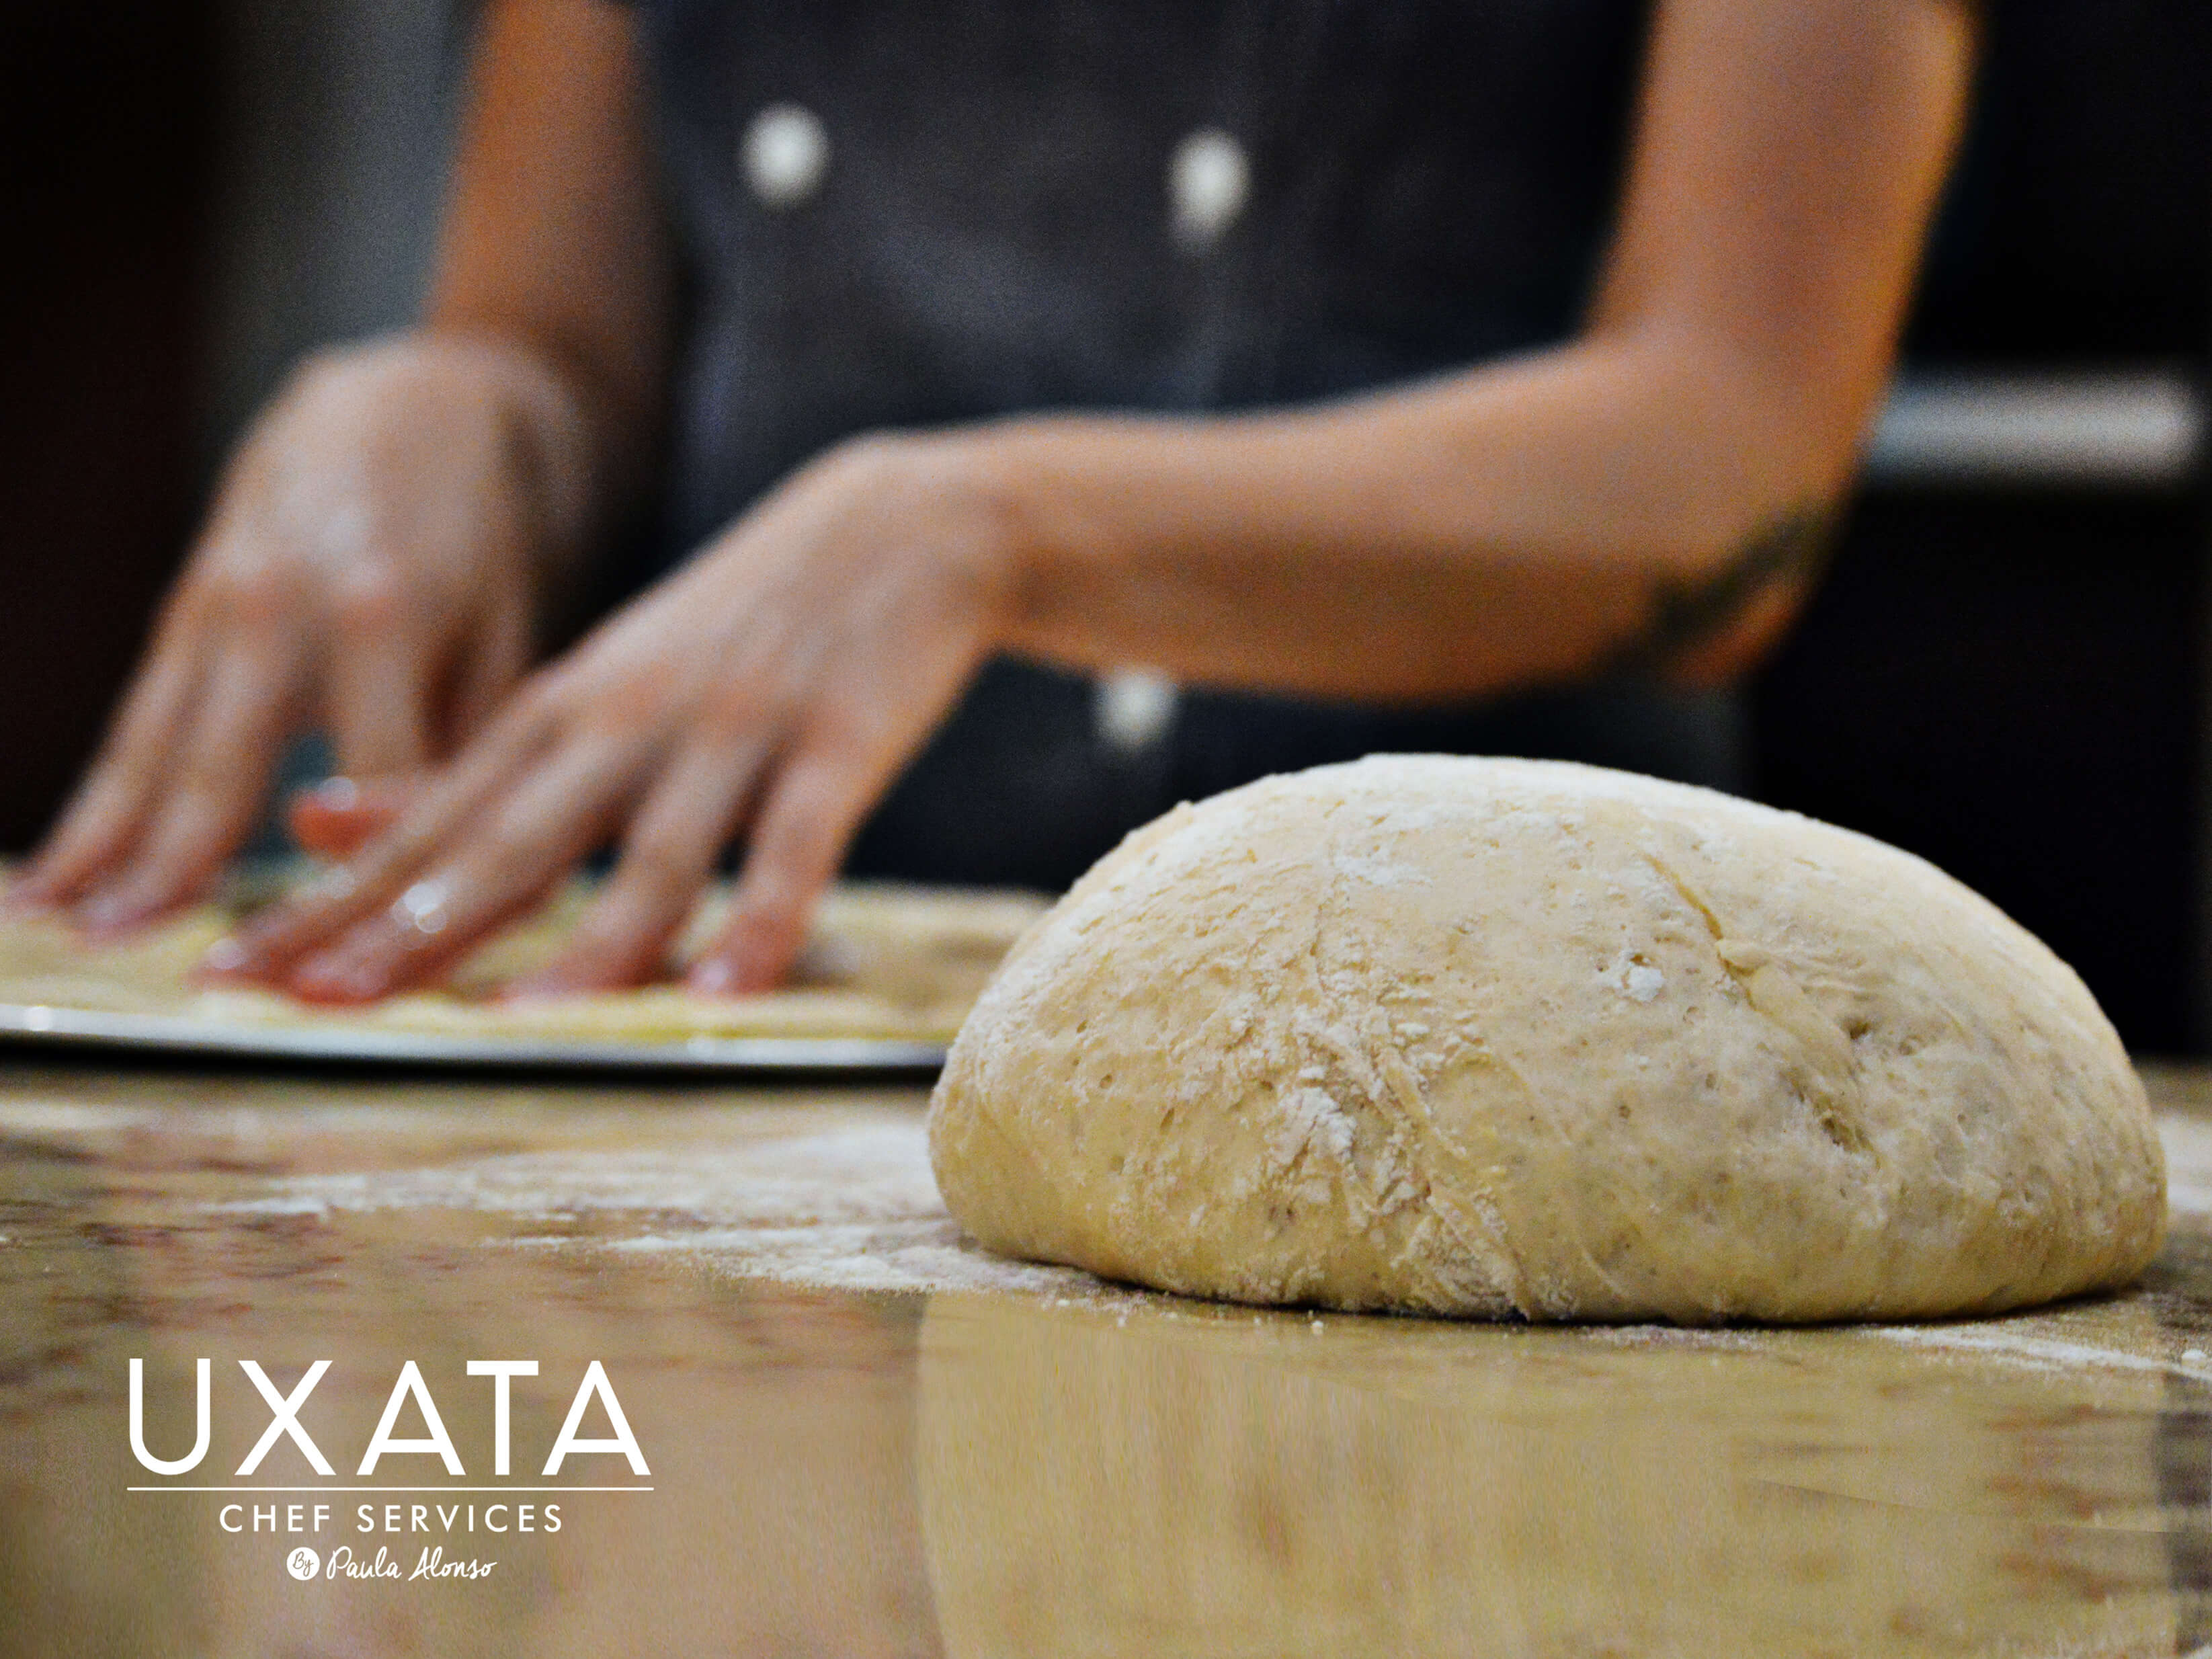 UXATA Private Chef Services making pizzas